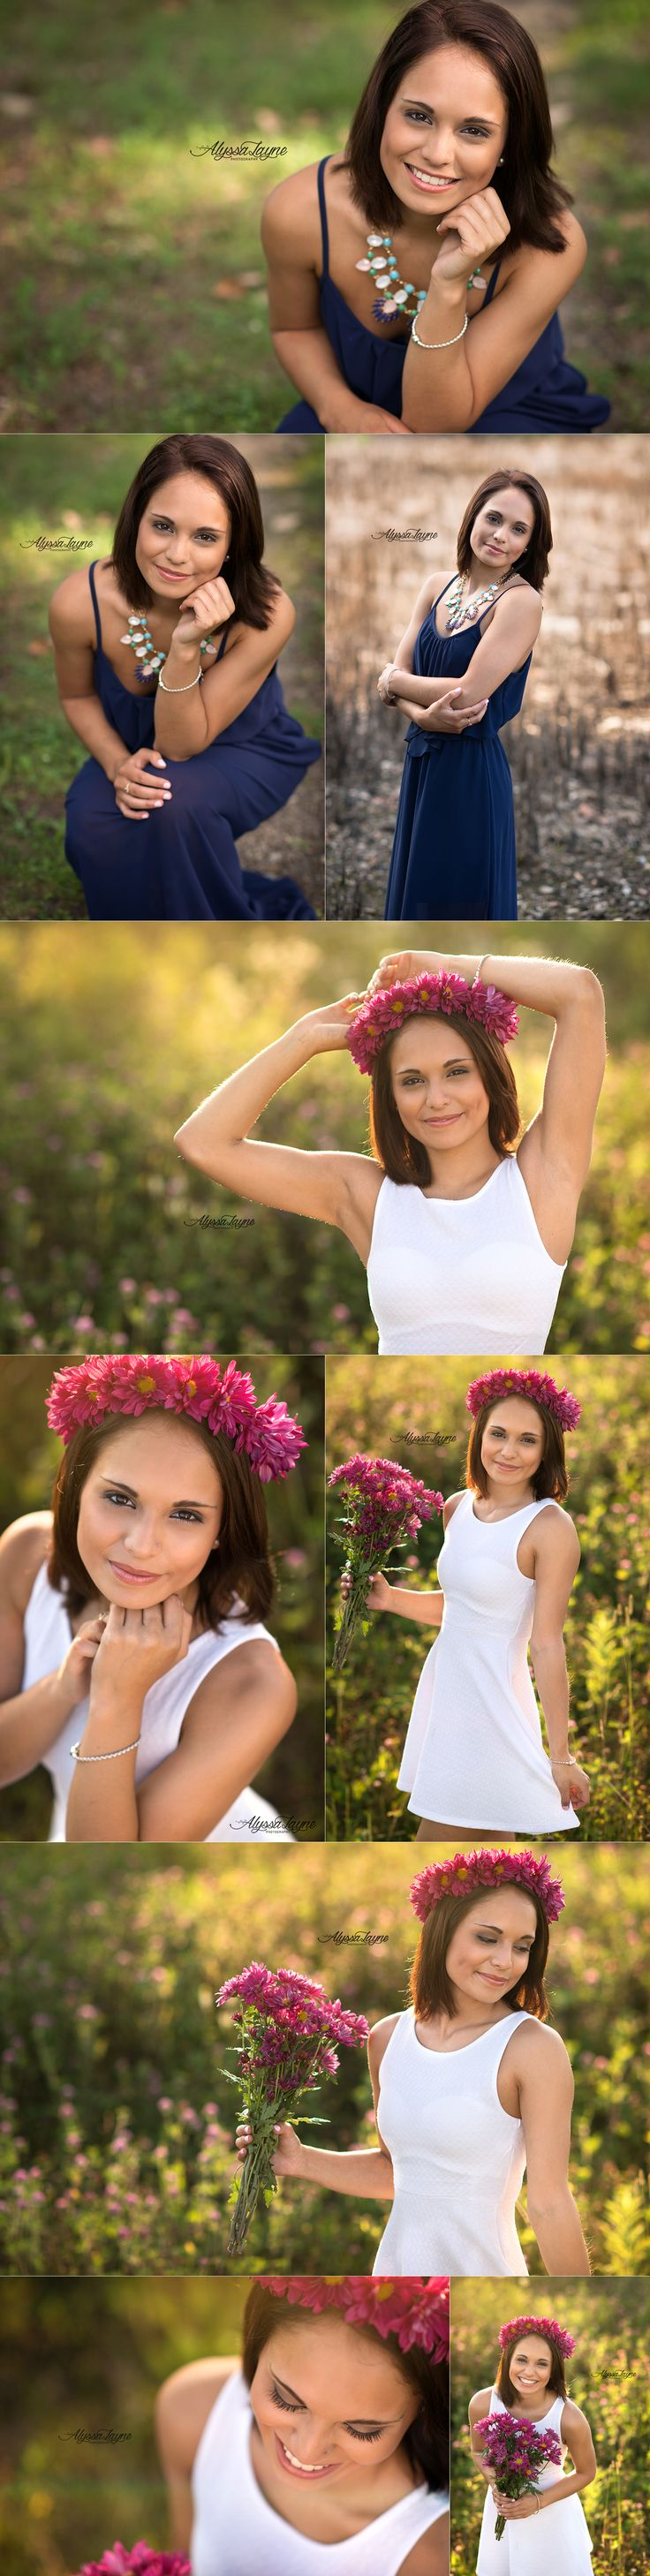 Veronica | Senior Poses | Senior Pictures | Chicago Senior Photographer | Alyssa Layne Photography